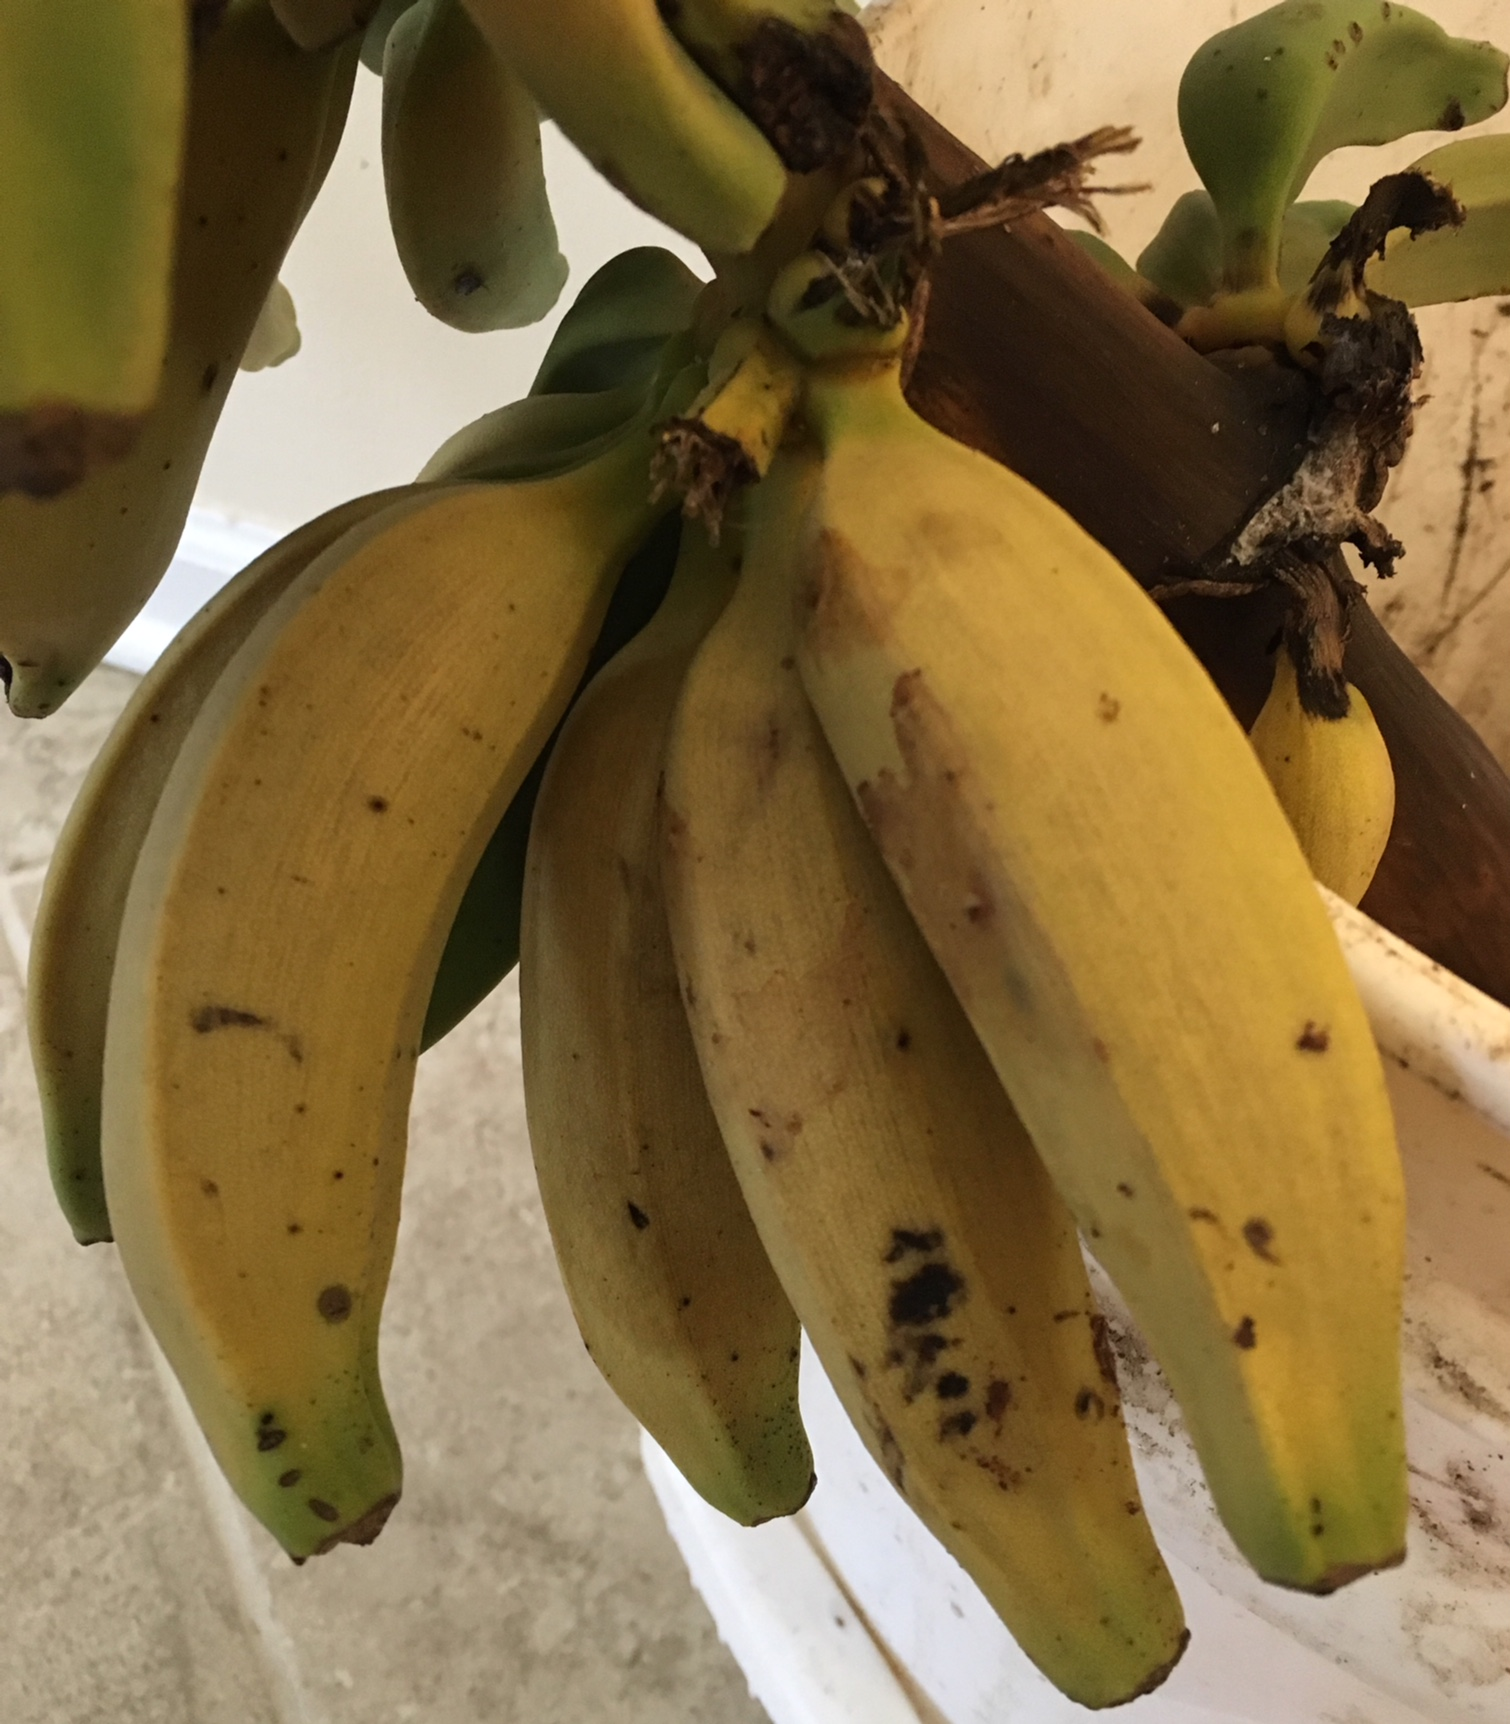 Organic bananas ripening on the stalk in a bucket of water.